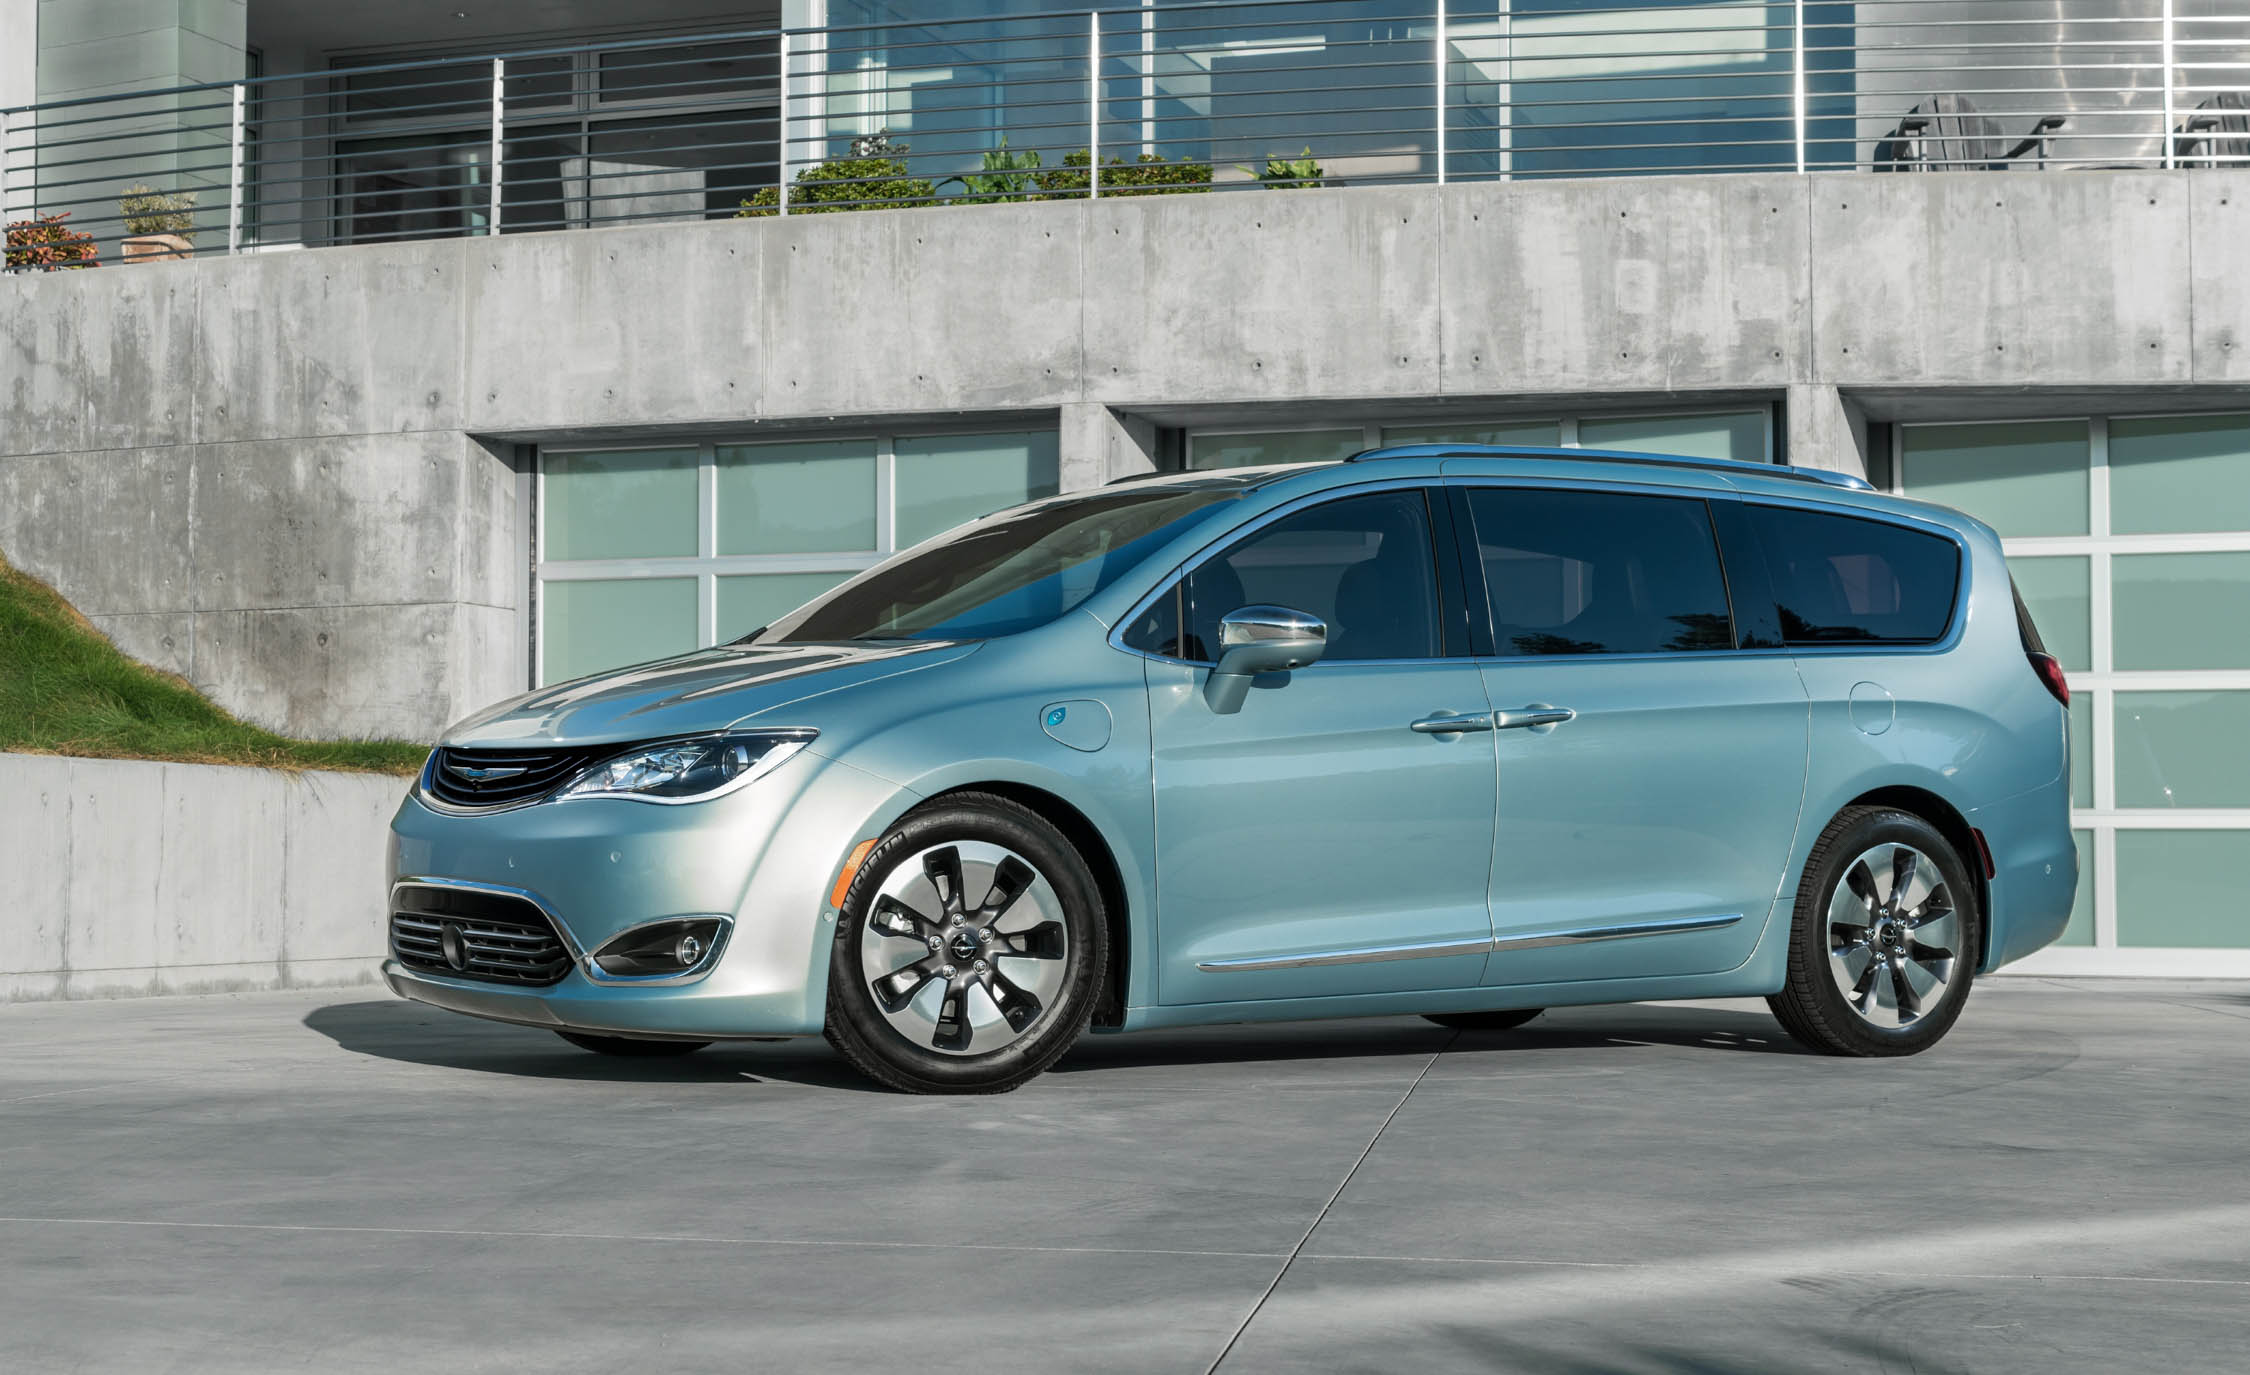 2017 Chrysler Pacifica Hybrid (Photo 5 of 10)